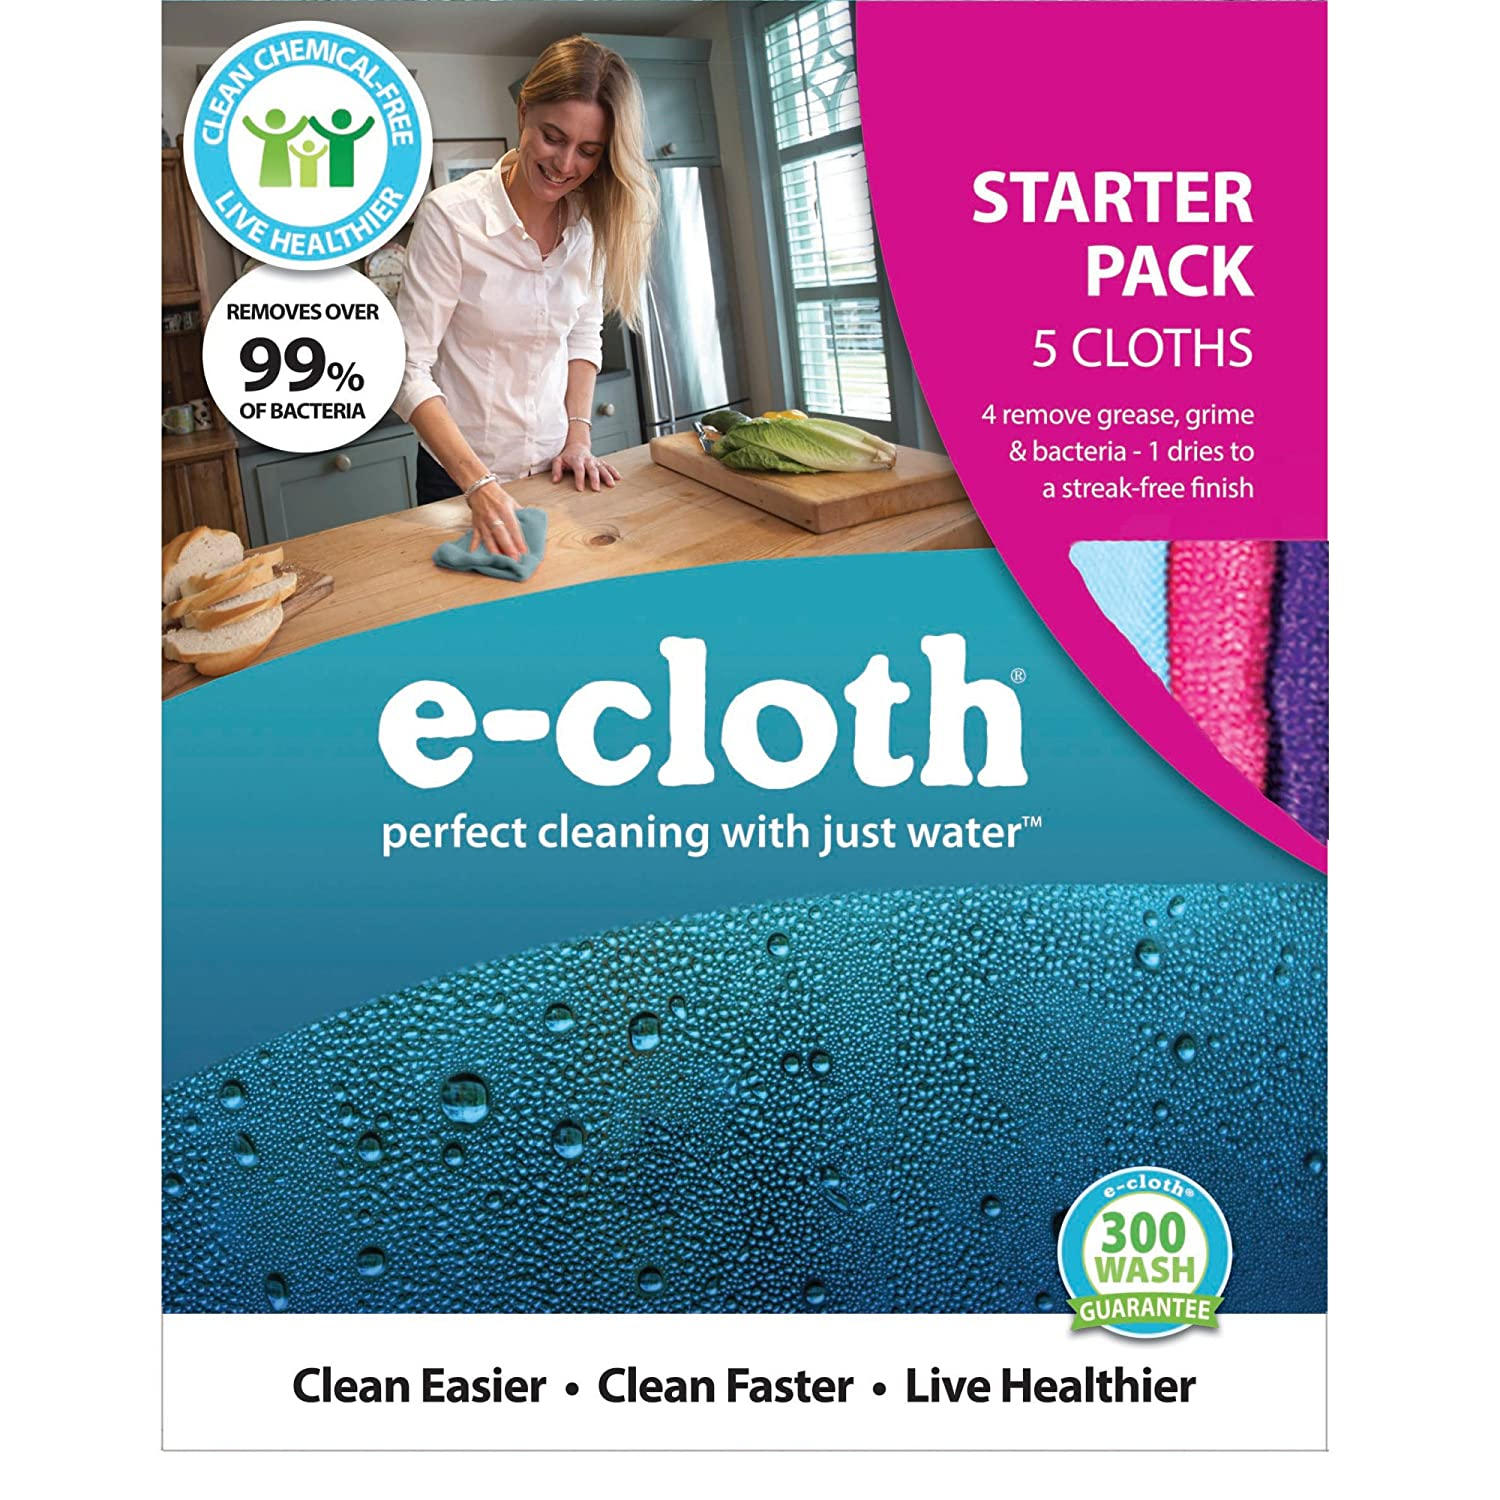 Amazon.com: Home Cleaning Starter Pack for Chemical-Free Cleaning ...